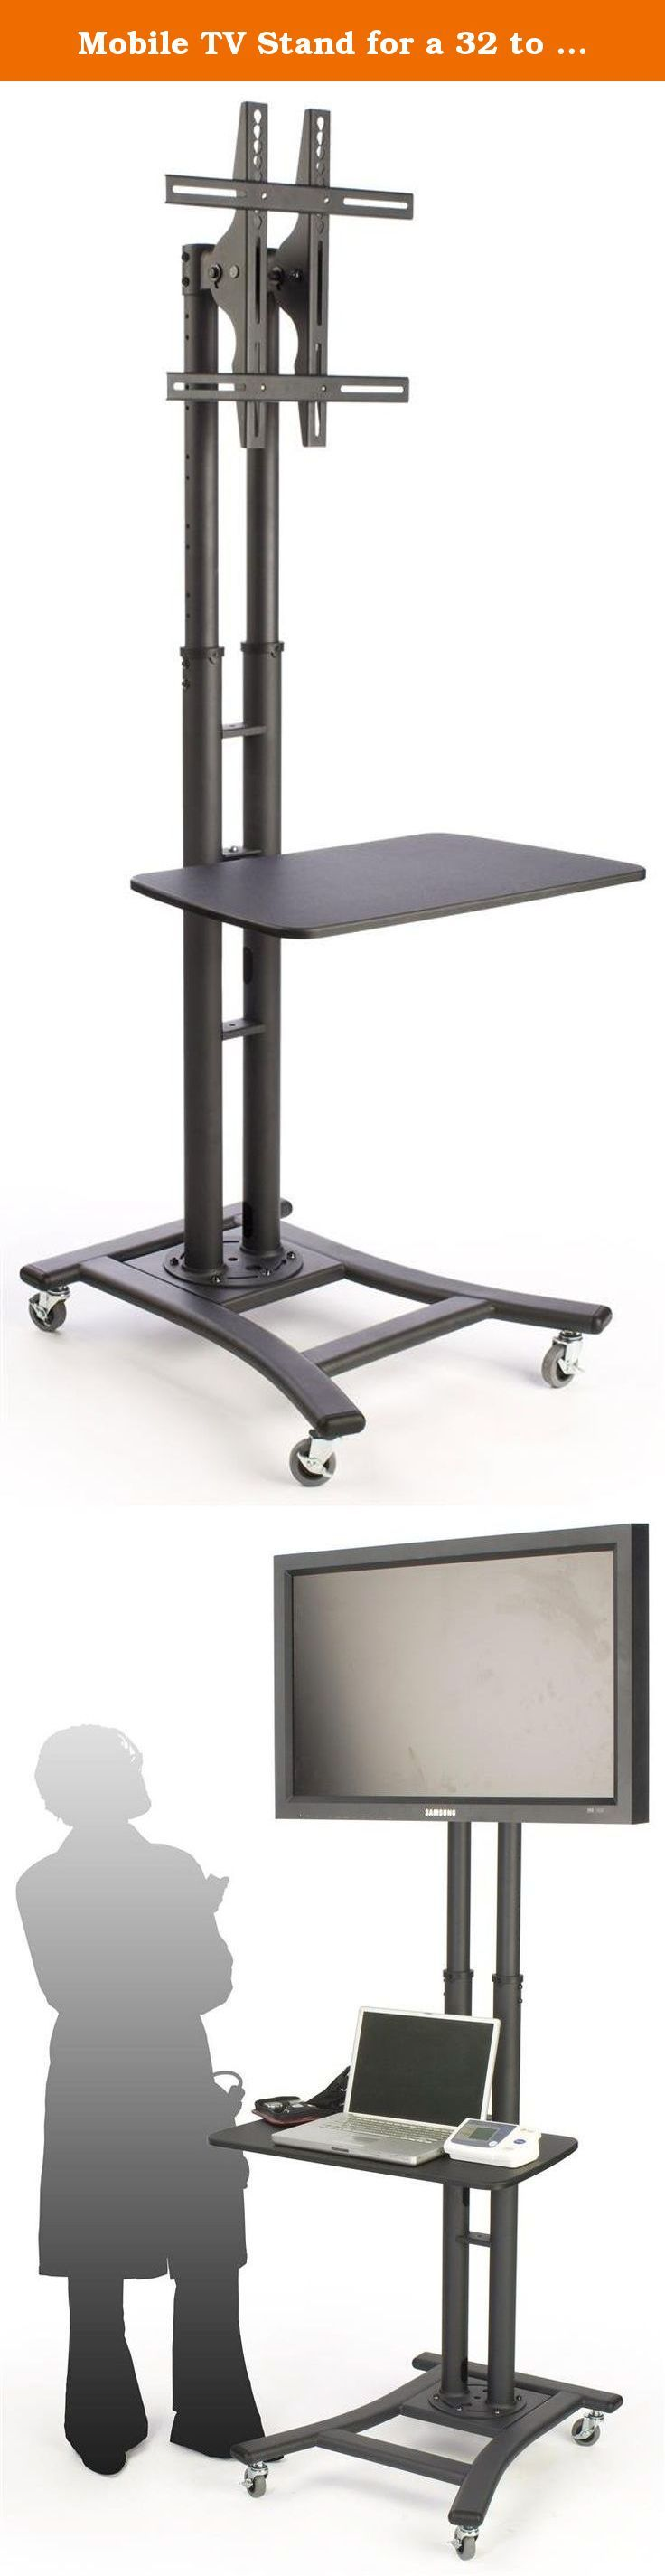 Mobile TV Stand for a 32 to 70 inch Flat Panel Monitor, 28-inch Shelf, Height-Adjustable and Tilting Bracket - Black. This mobile TV stand is adjustable in many different ways to accommodate the varying needs of a user. The floor-standing television display is designed to hold a 32 to 70-inch flat screen monitor, either in portrait or landscape orientation, weighing no more than 110 pounds. The mounting bracket includes removable extenders for accommodating both orientations in most...